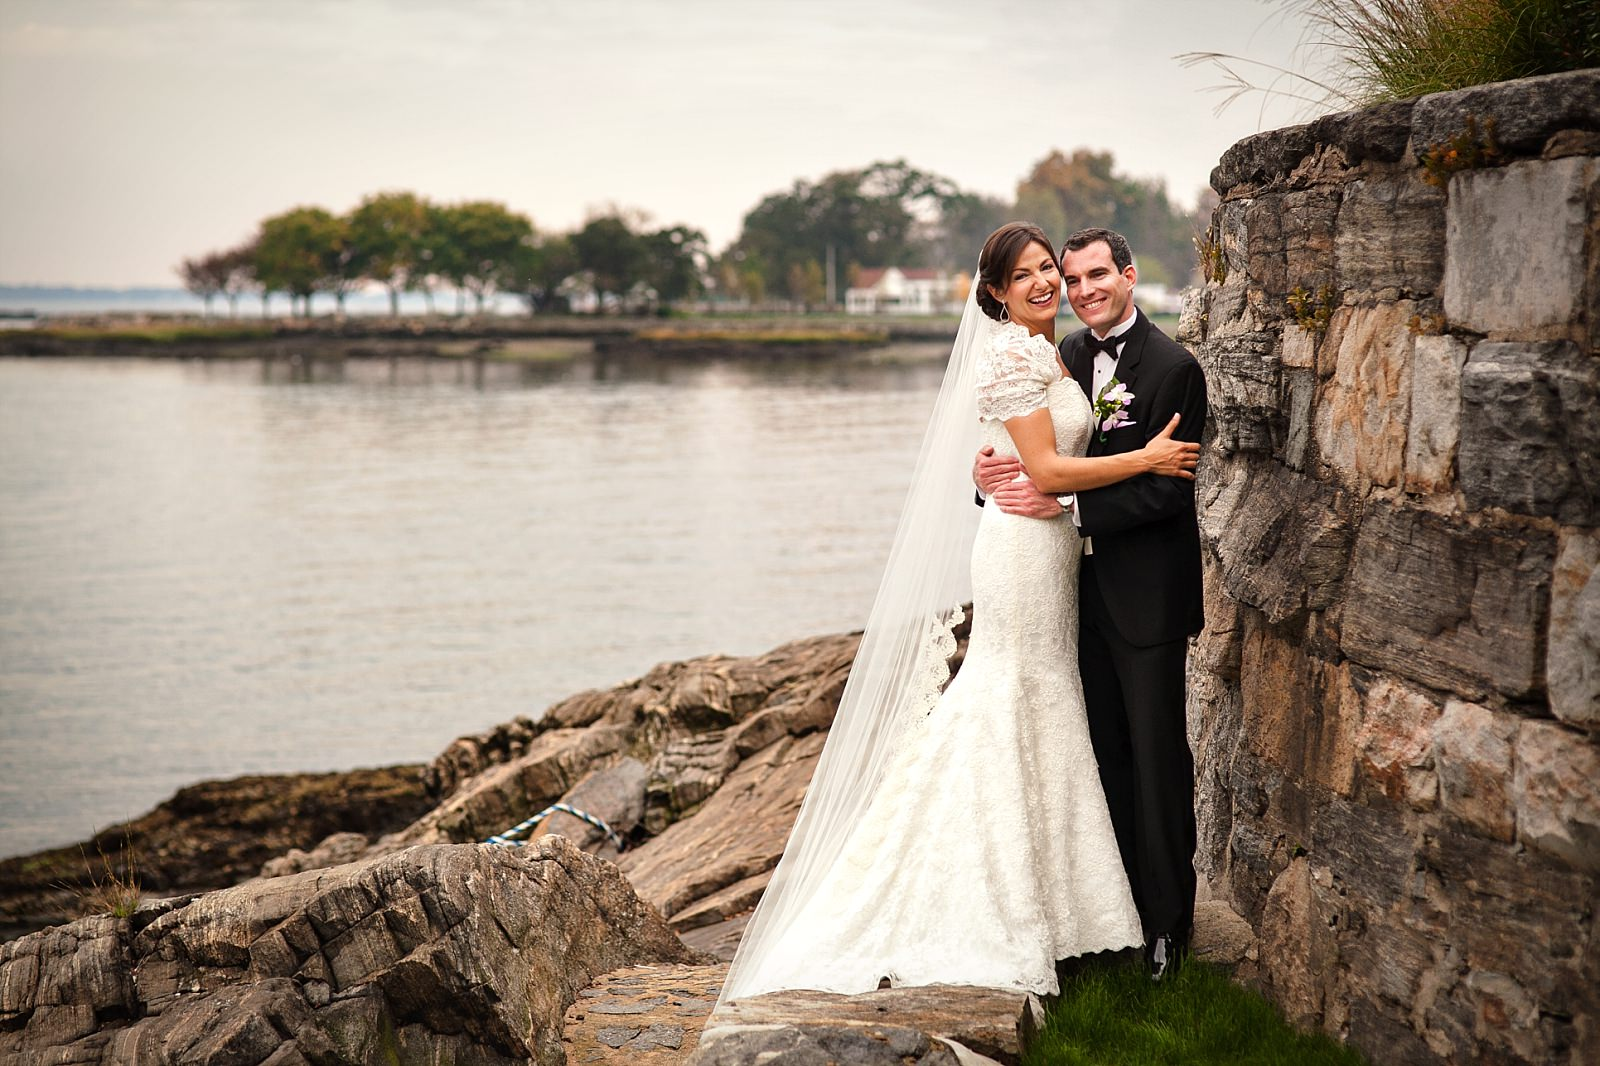 NY_Wedding_Photographer_KaJo_25.jpg